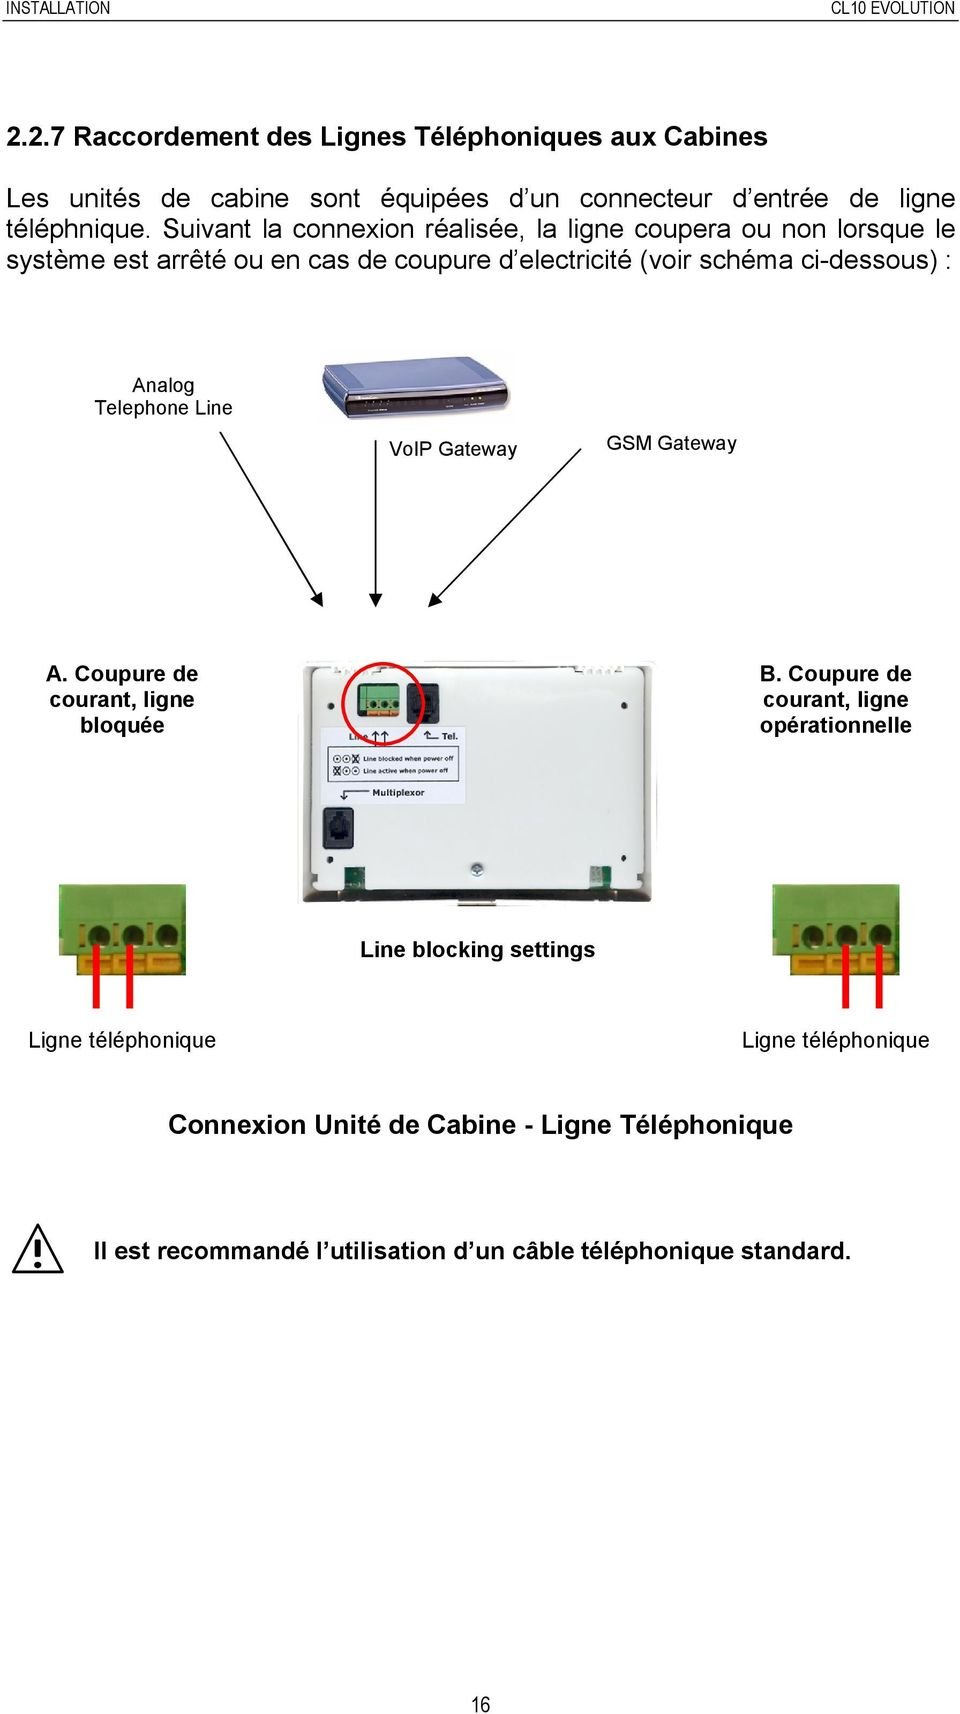 Analog Telephone Line VoIP Gateway GSM Gateway A. Coupure de courant, ligne bloquée B.